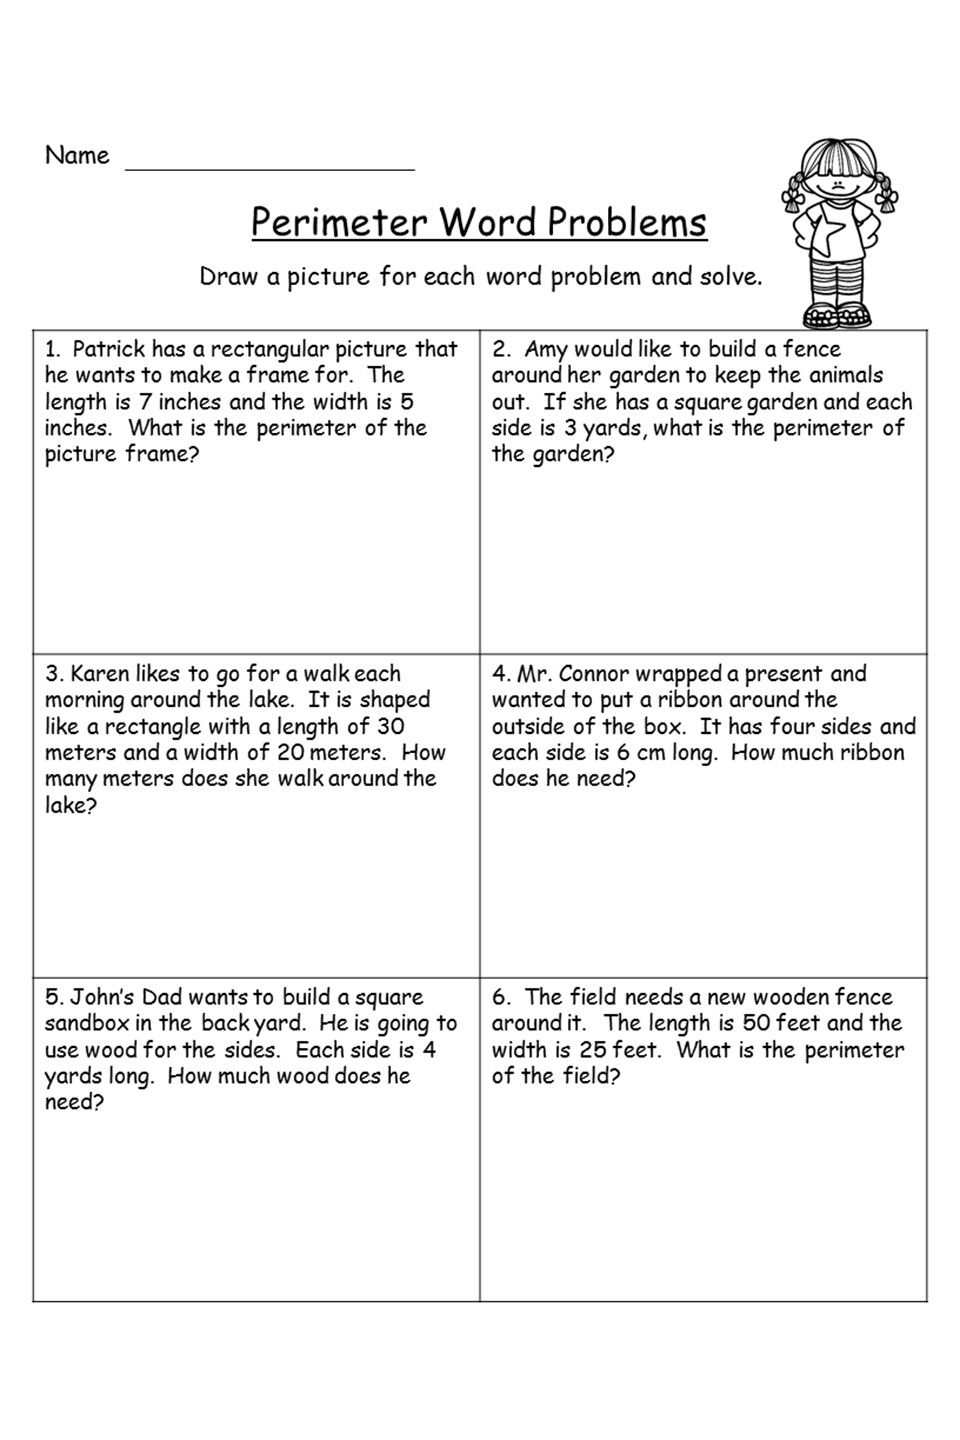 medium resolution of Perimeter Word Problems   Word problems